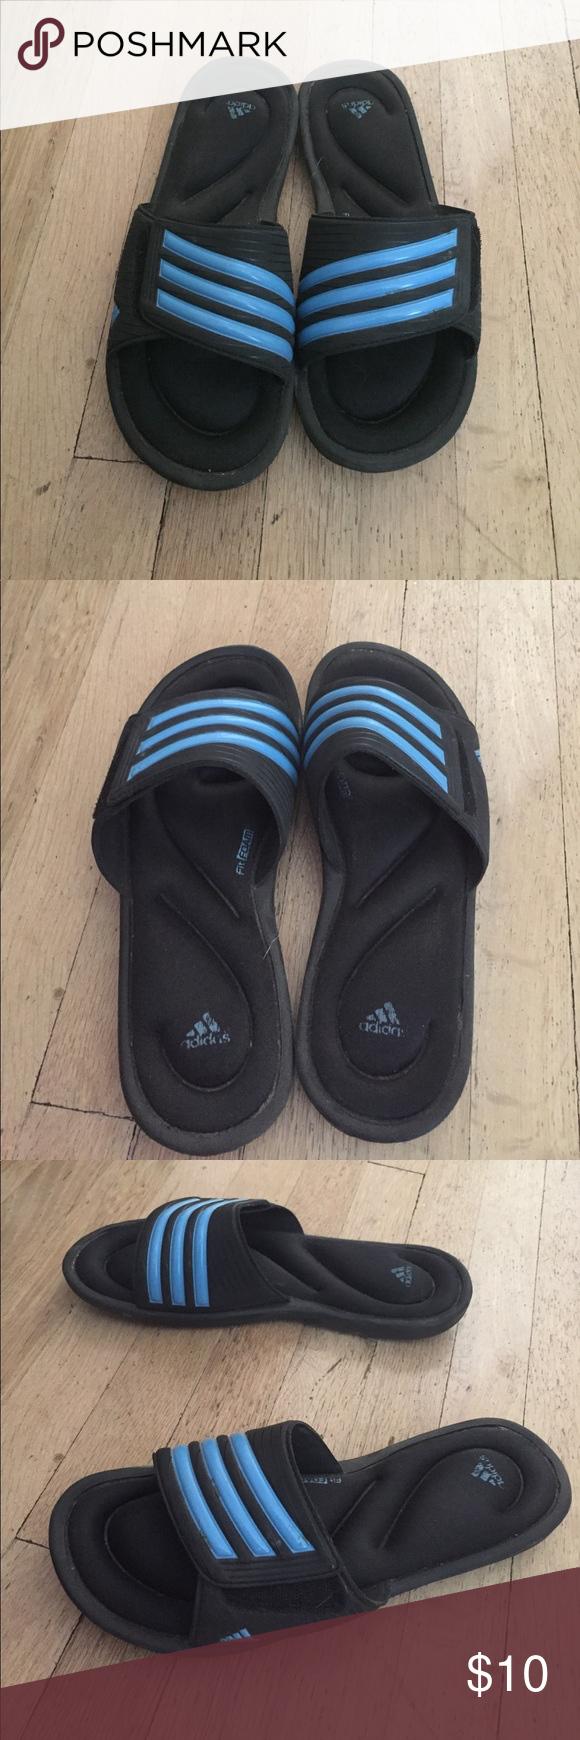 eecba76a8 Blue and black adidas slides Slightly used condition. Comfort cushion sole